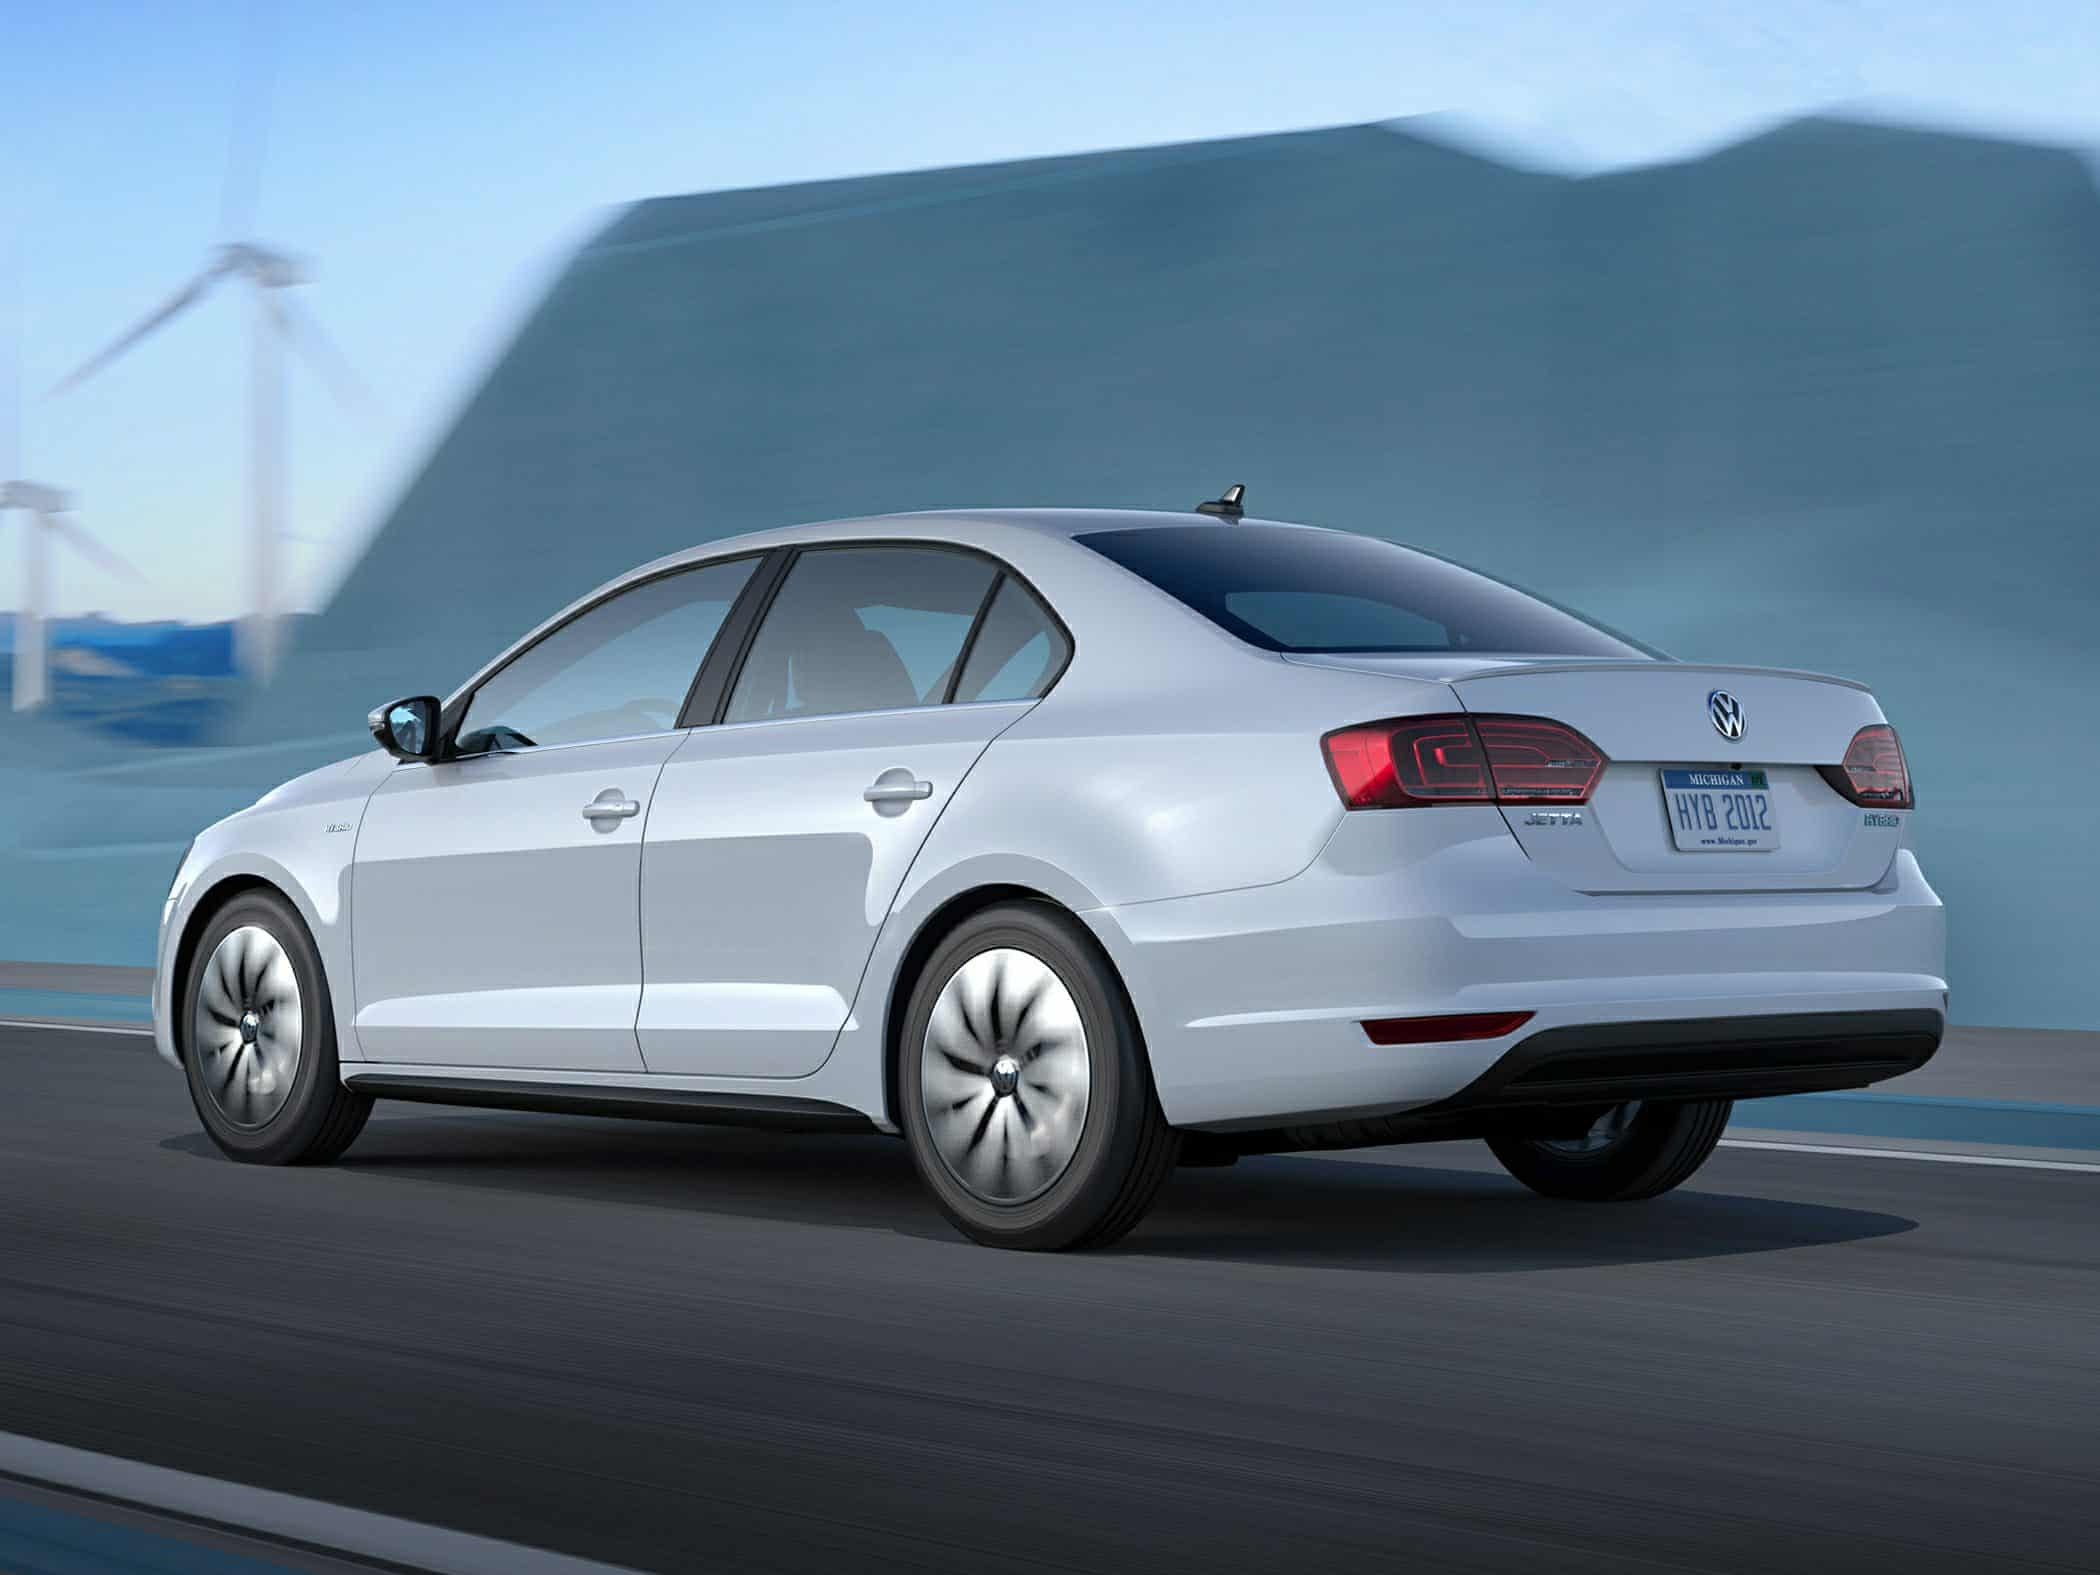 Volkswagen Jetta – used car